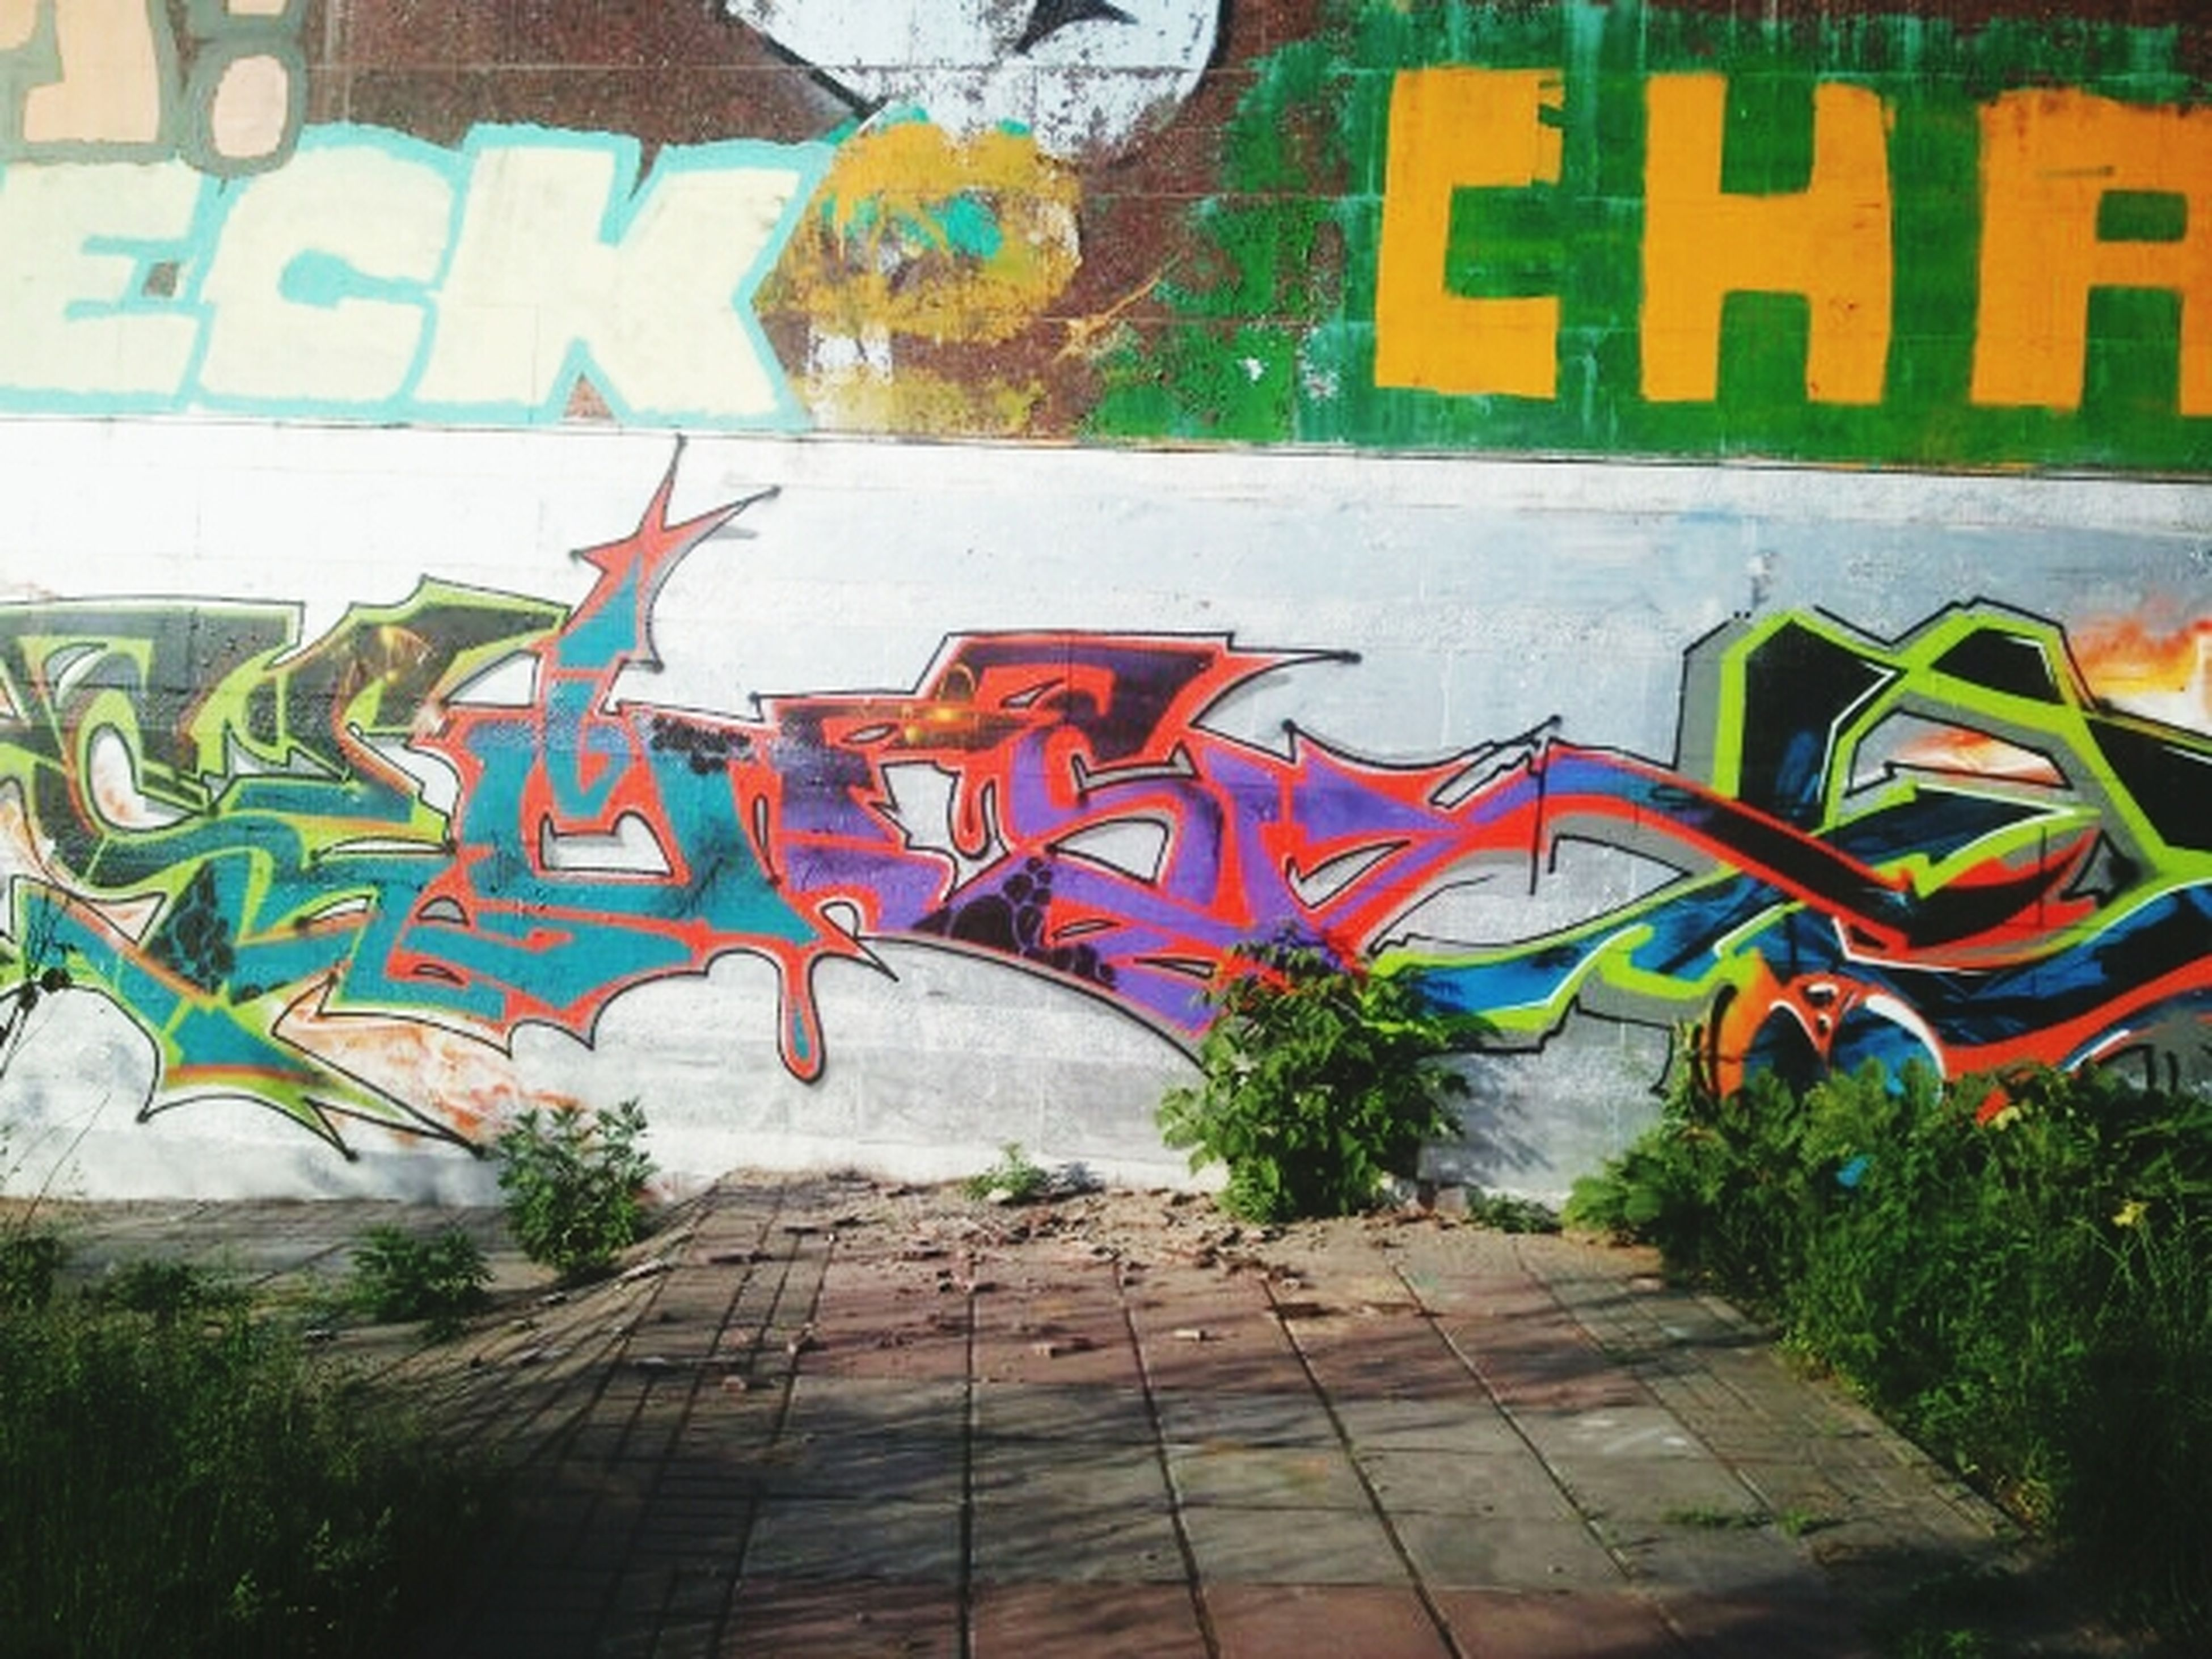 graffiti, art, art and craft, built structure, creativity, architecture, multi colored, wall - building feature, building exterior, text, street art, western script, day, outdoors, human representation, tree, no people, wall, mural, communication